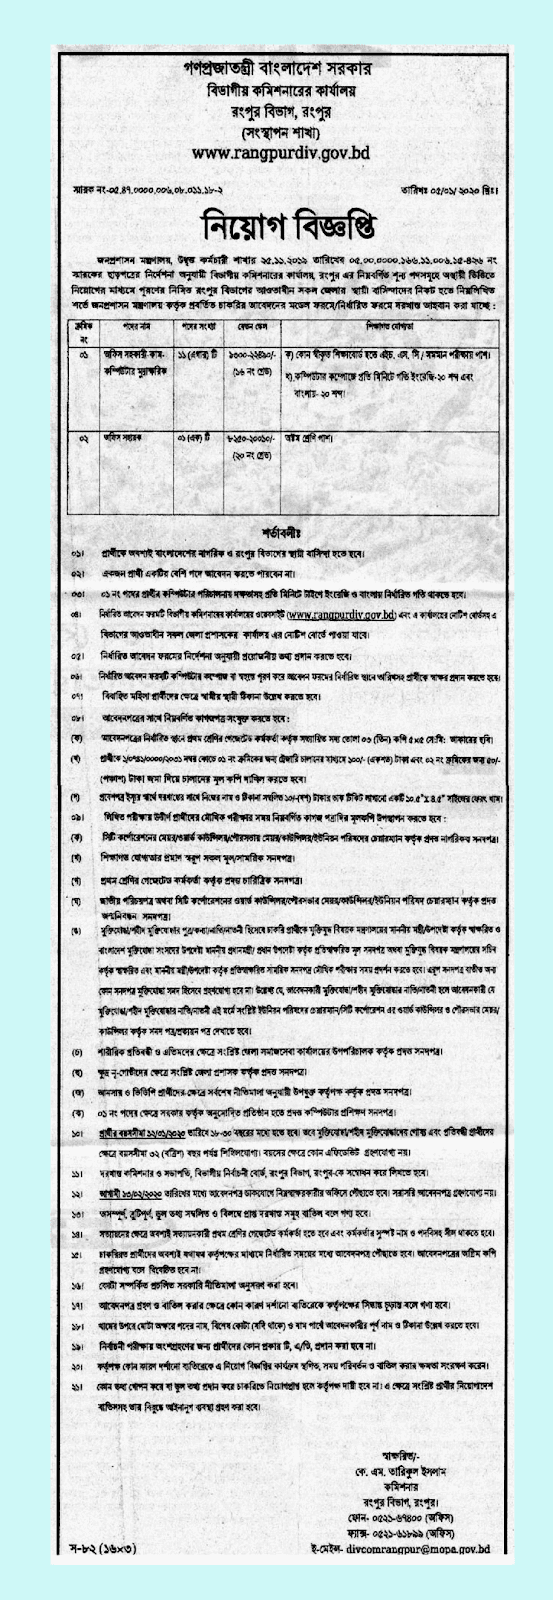 Rangpur Commissioner Office Job Circular 2020